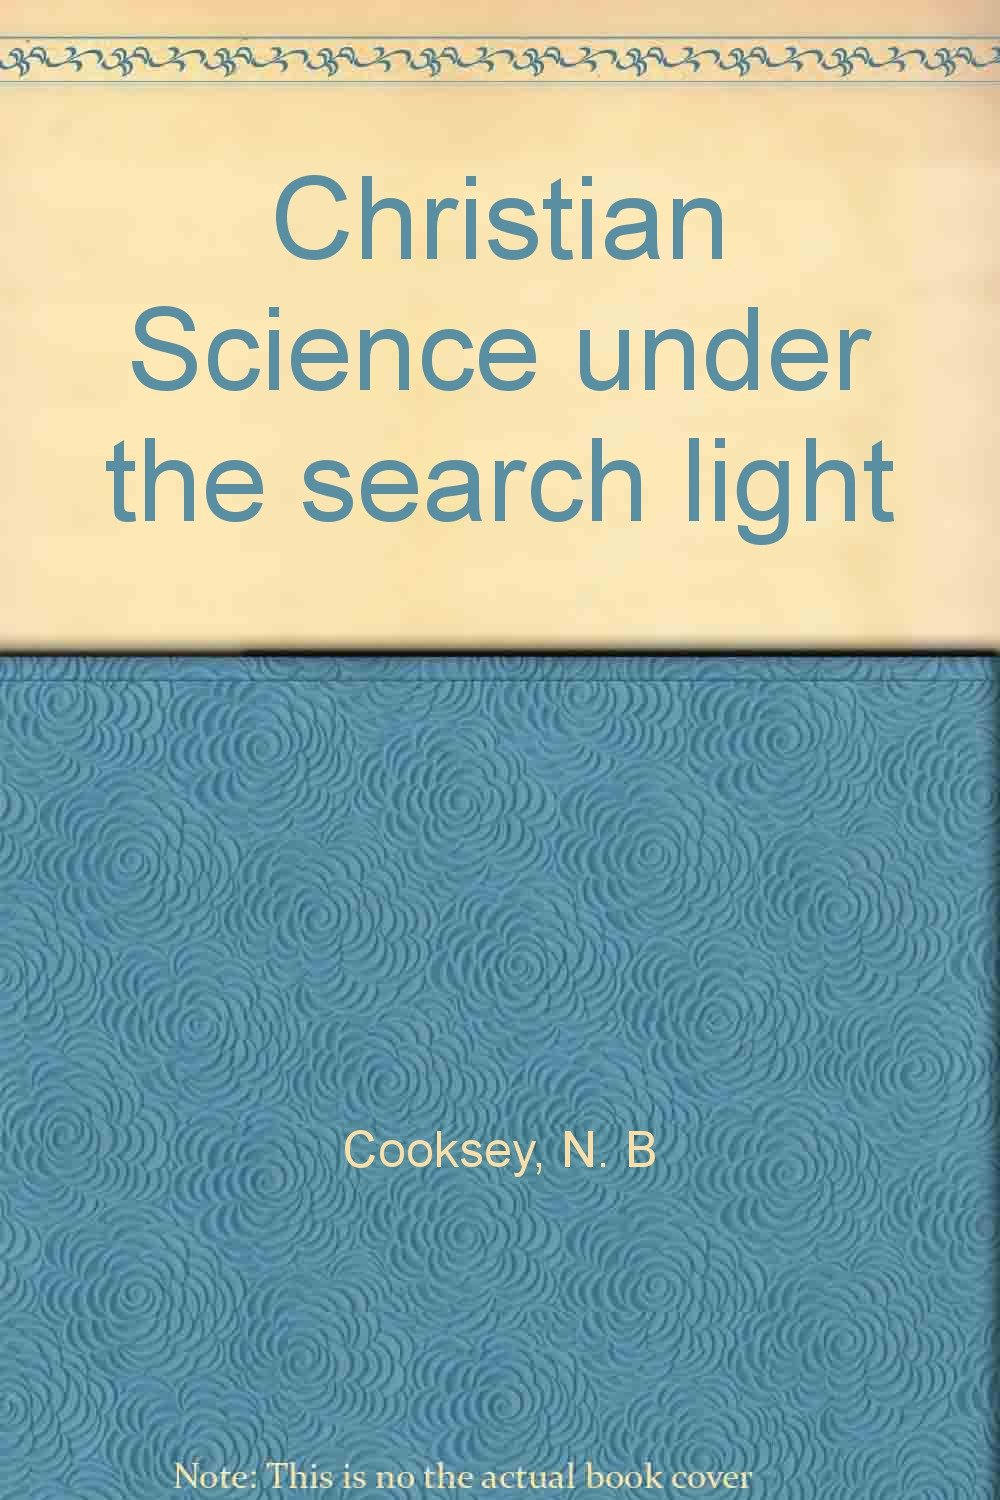 Christian Science under the search light